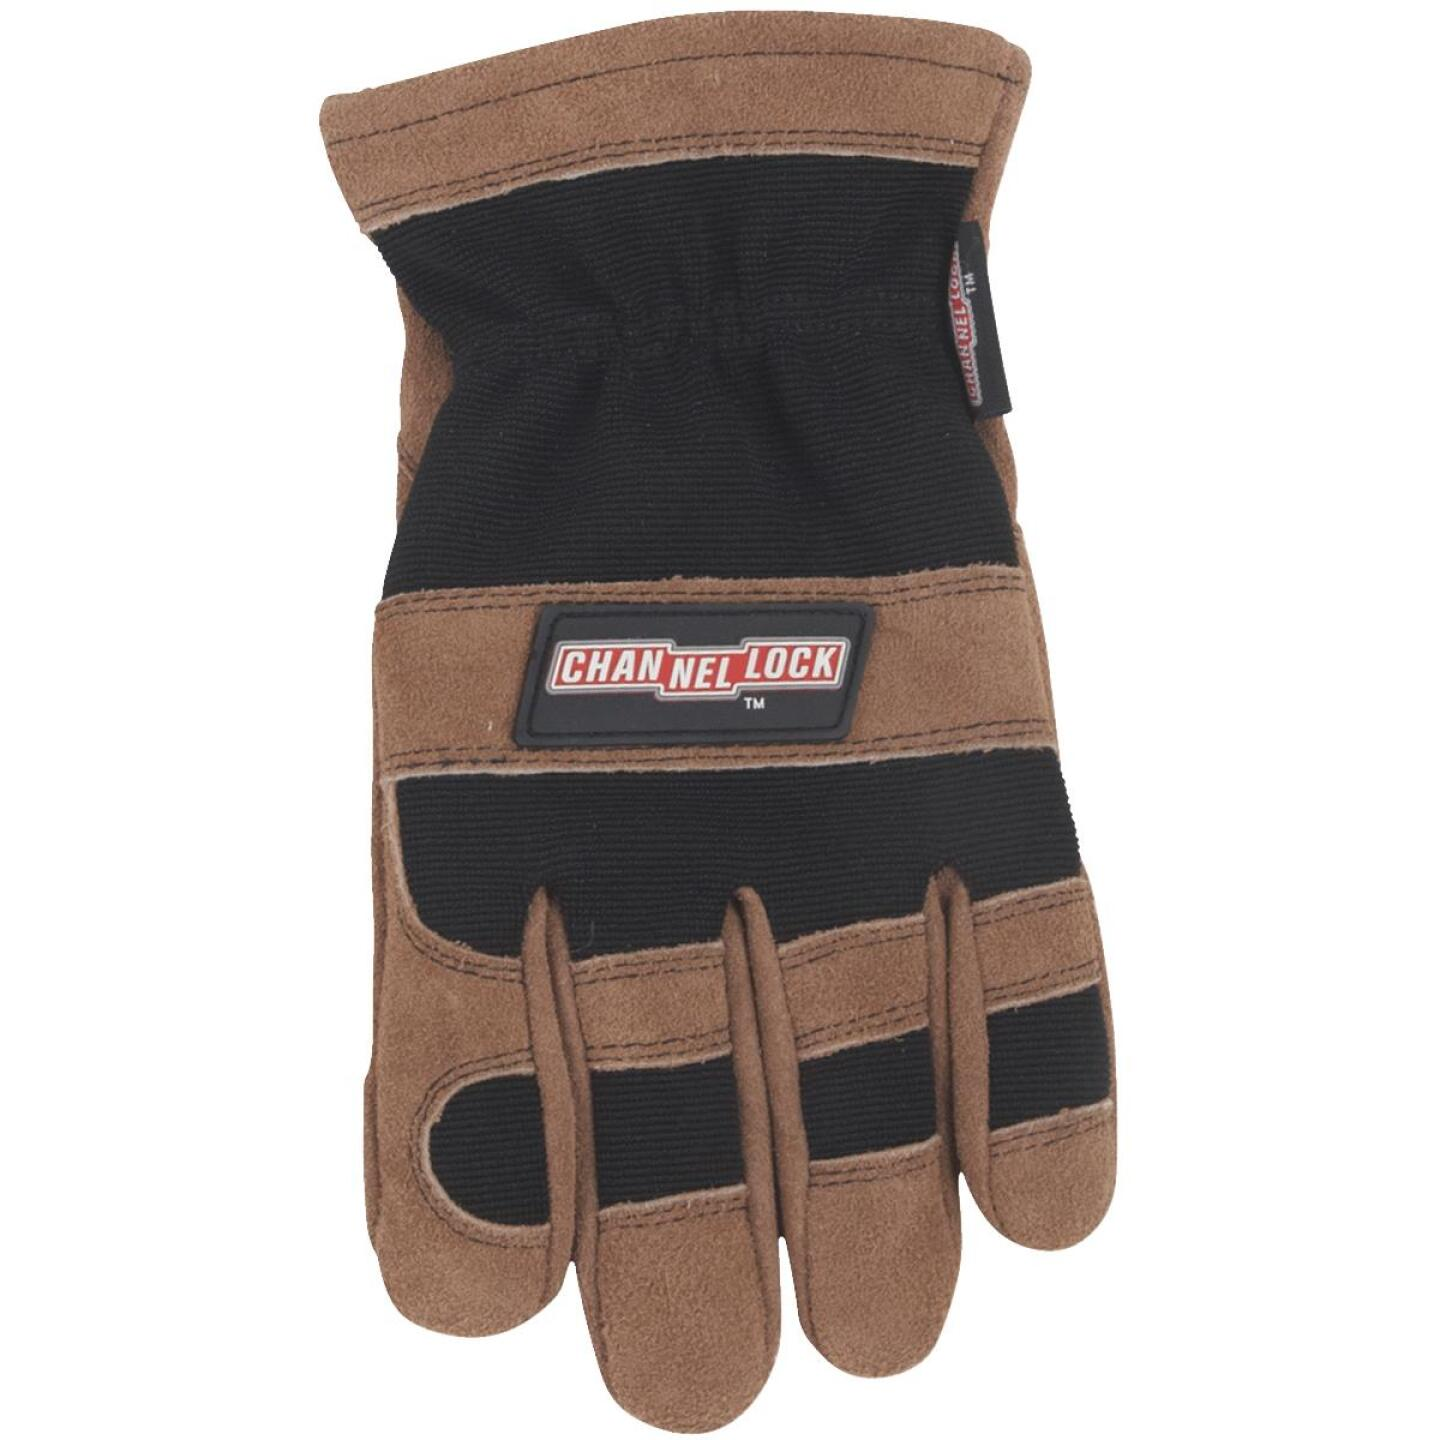 Channellock Men's Large Leather Winter Work Glove Image 4